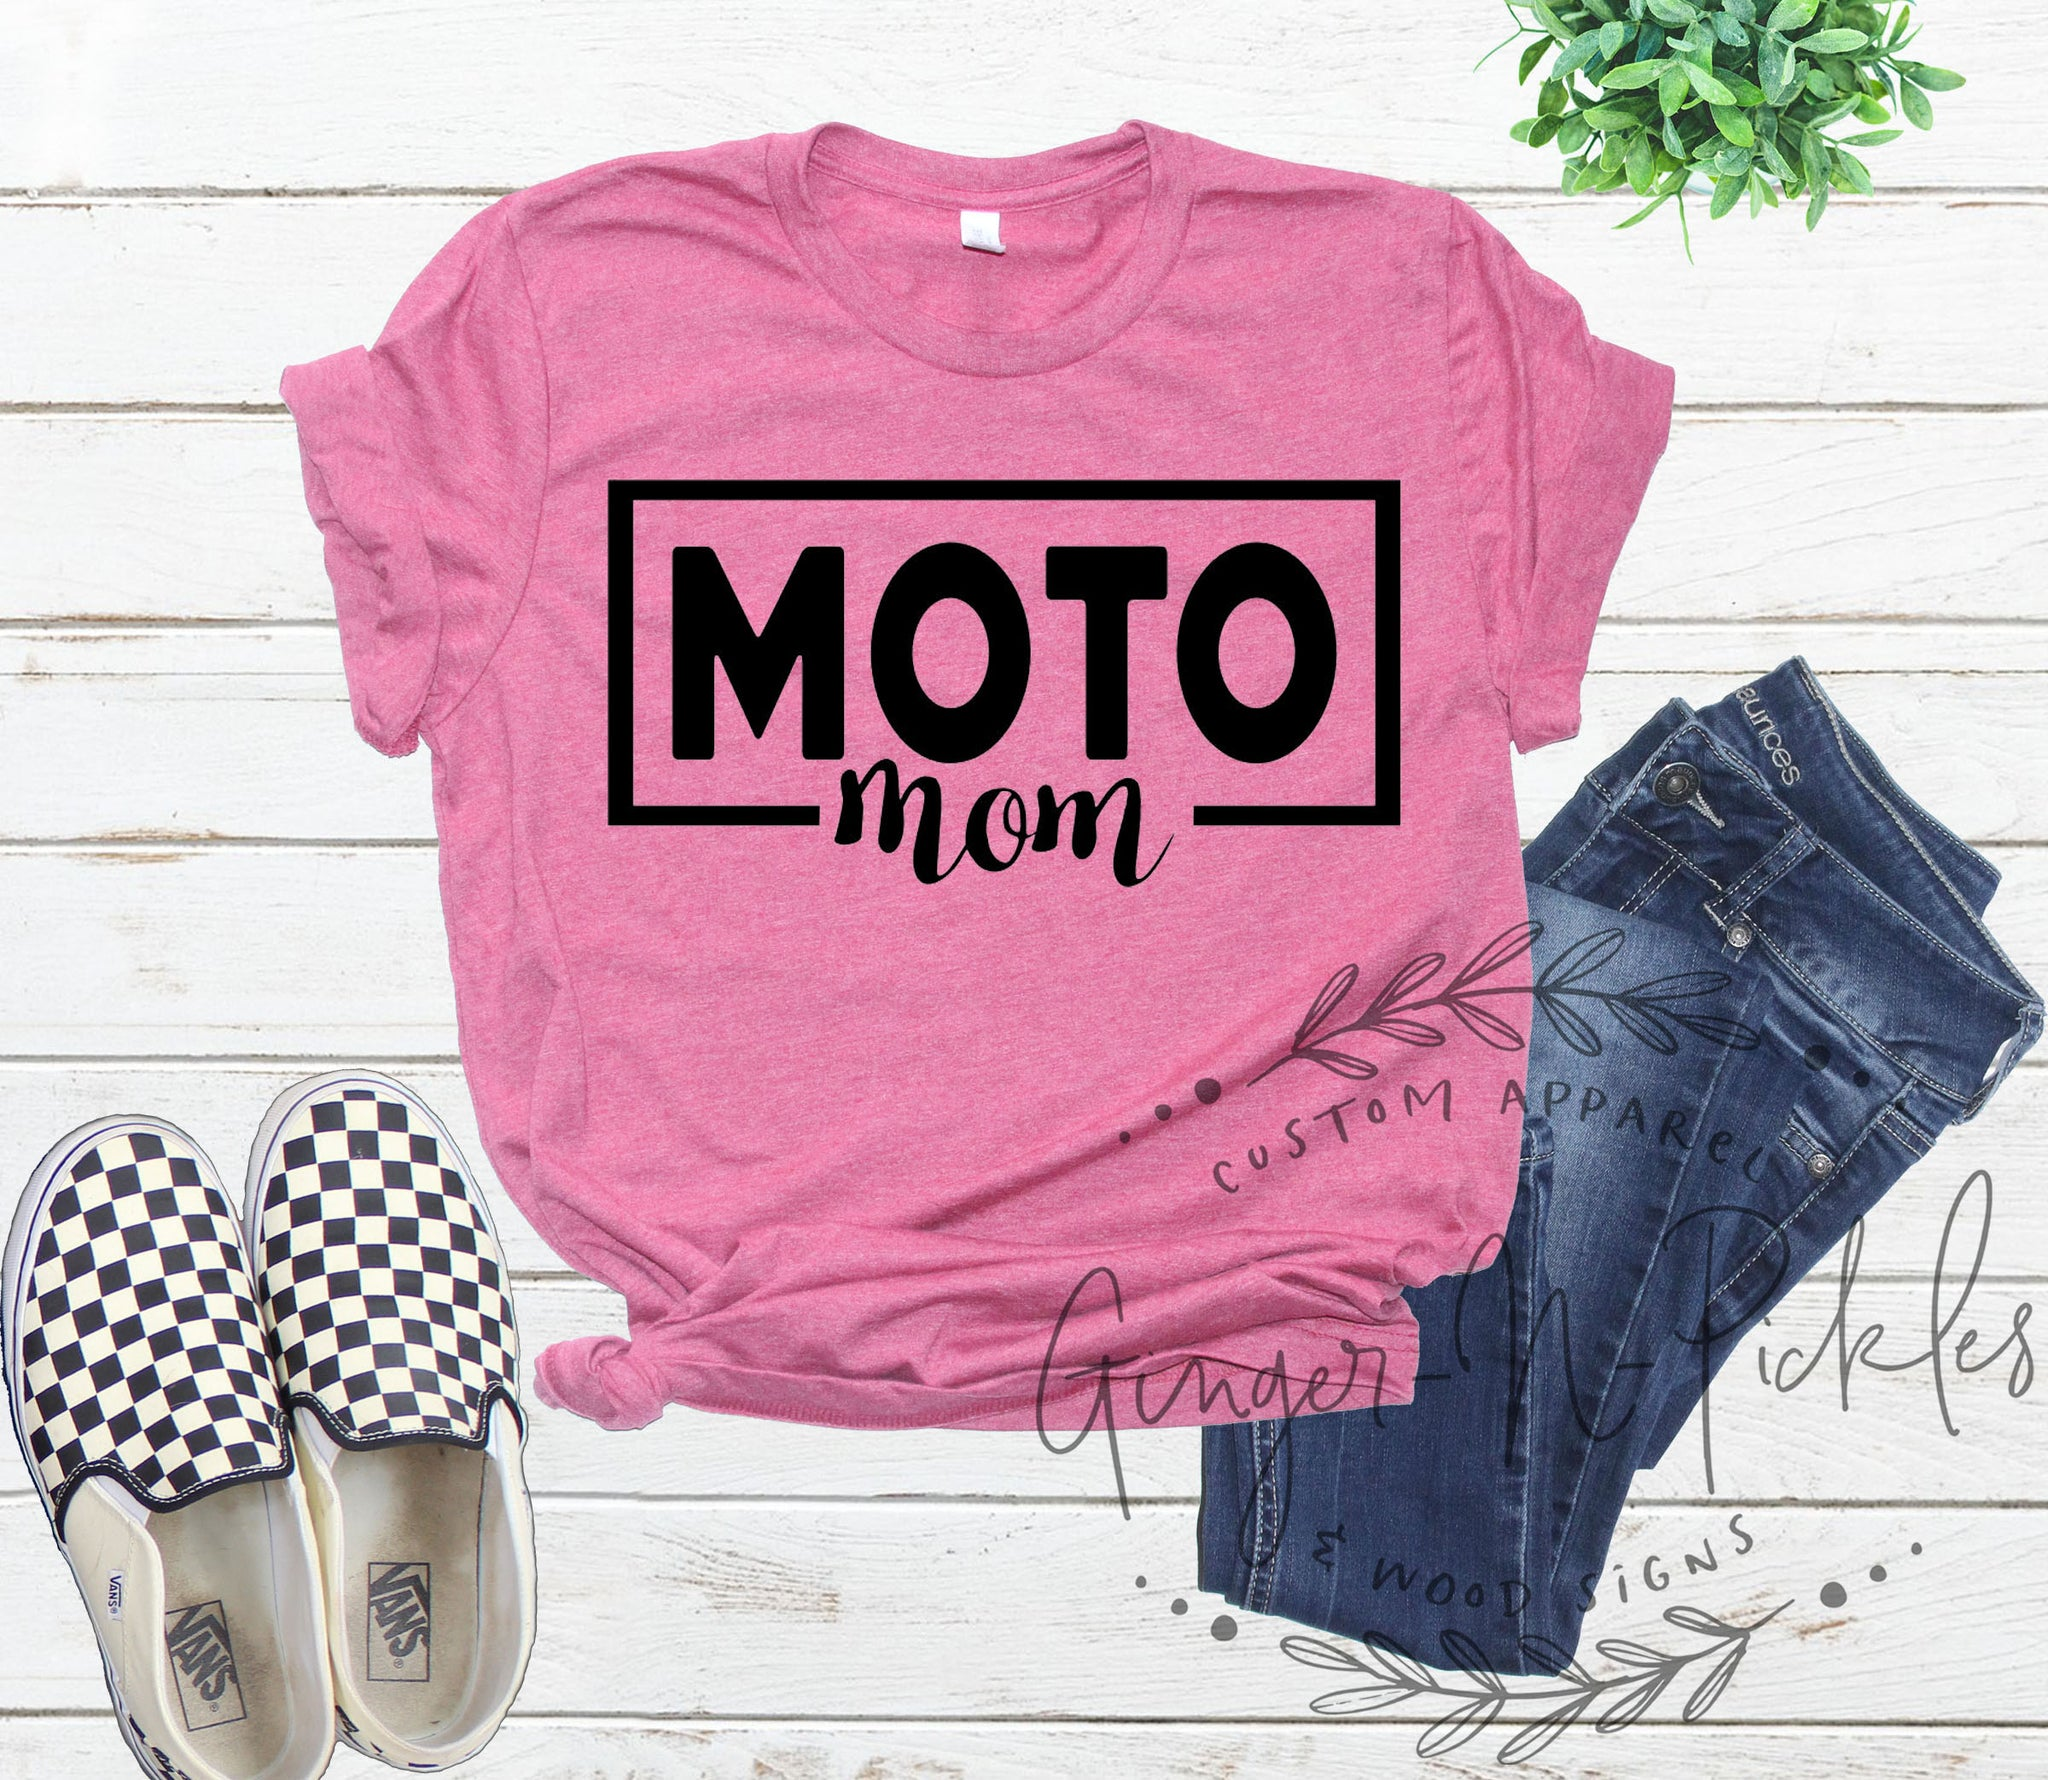 Moto Mom Shirt, Short Sleeve Race Mom Shirt, Dirt Bike Racing Shirt, Dirt Bike Mom Shirt, Gift for Mom